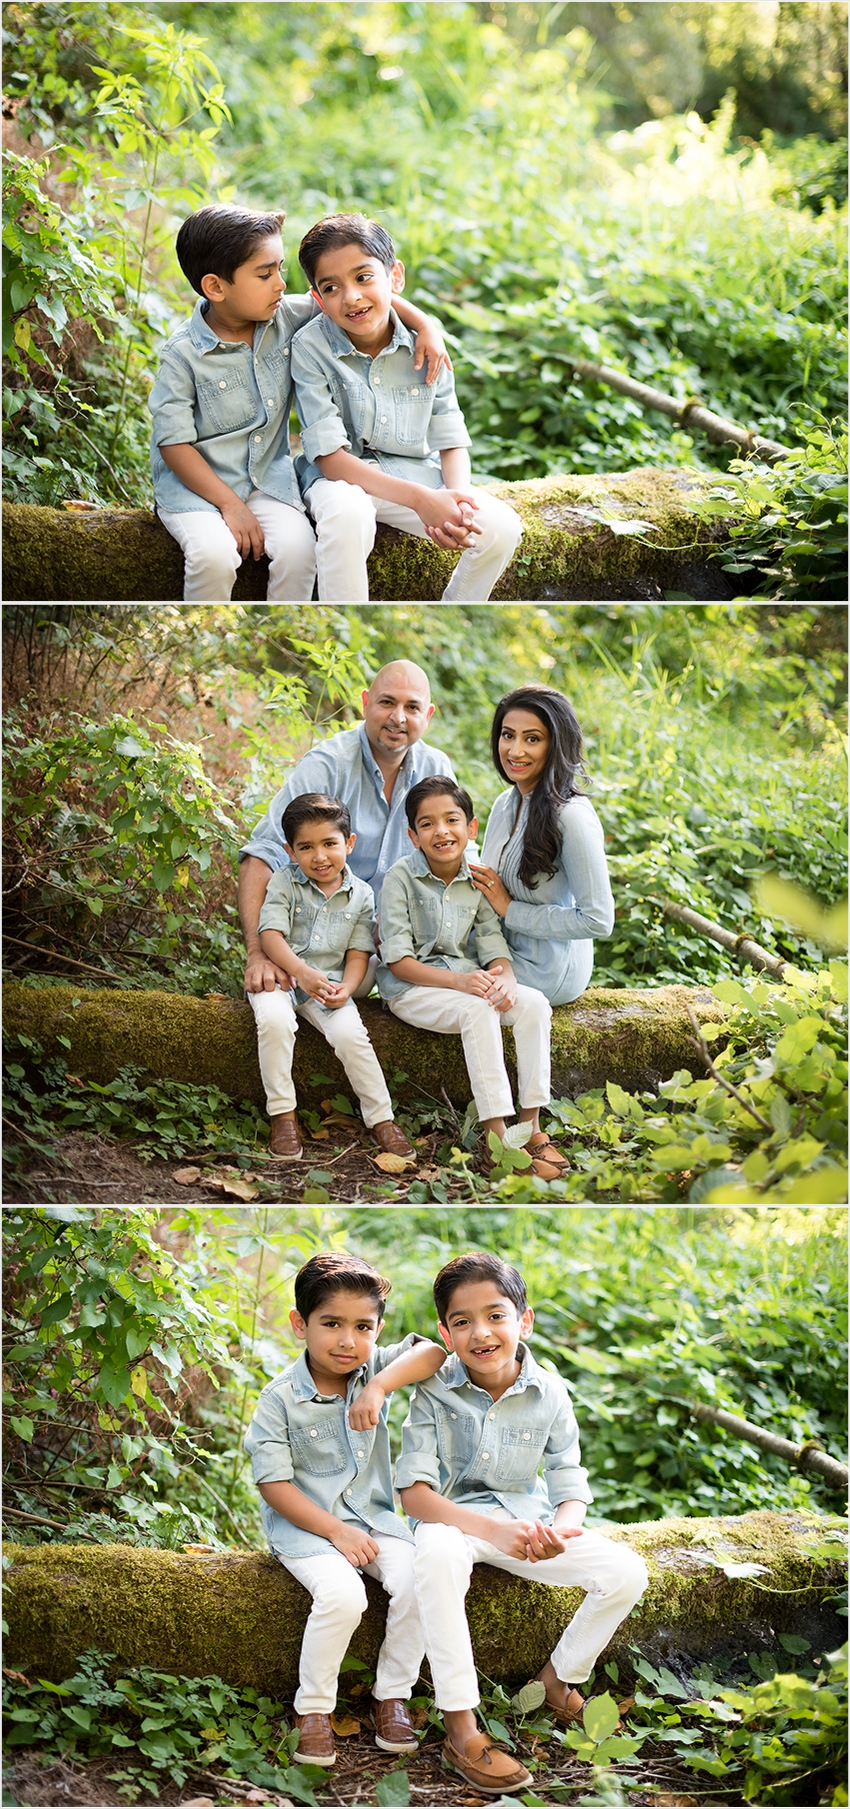 abbotsford bc the N family photographer 005 side 5